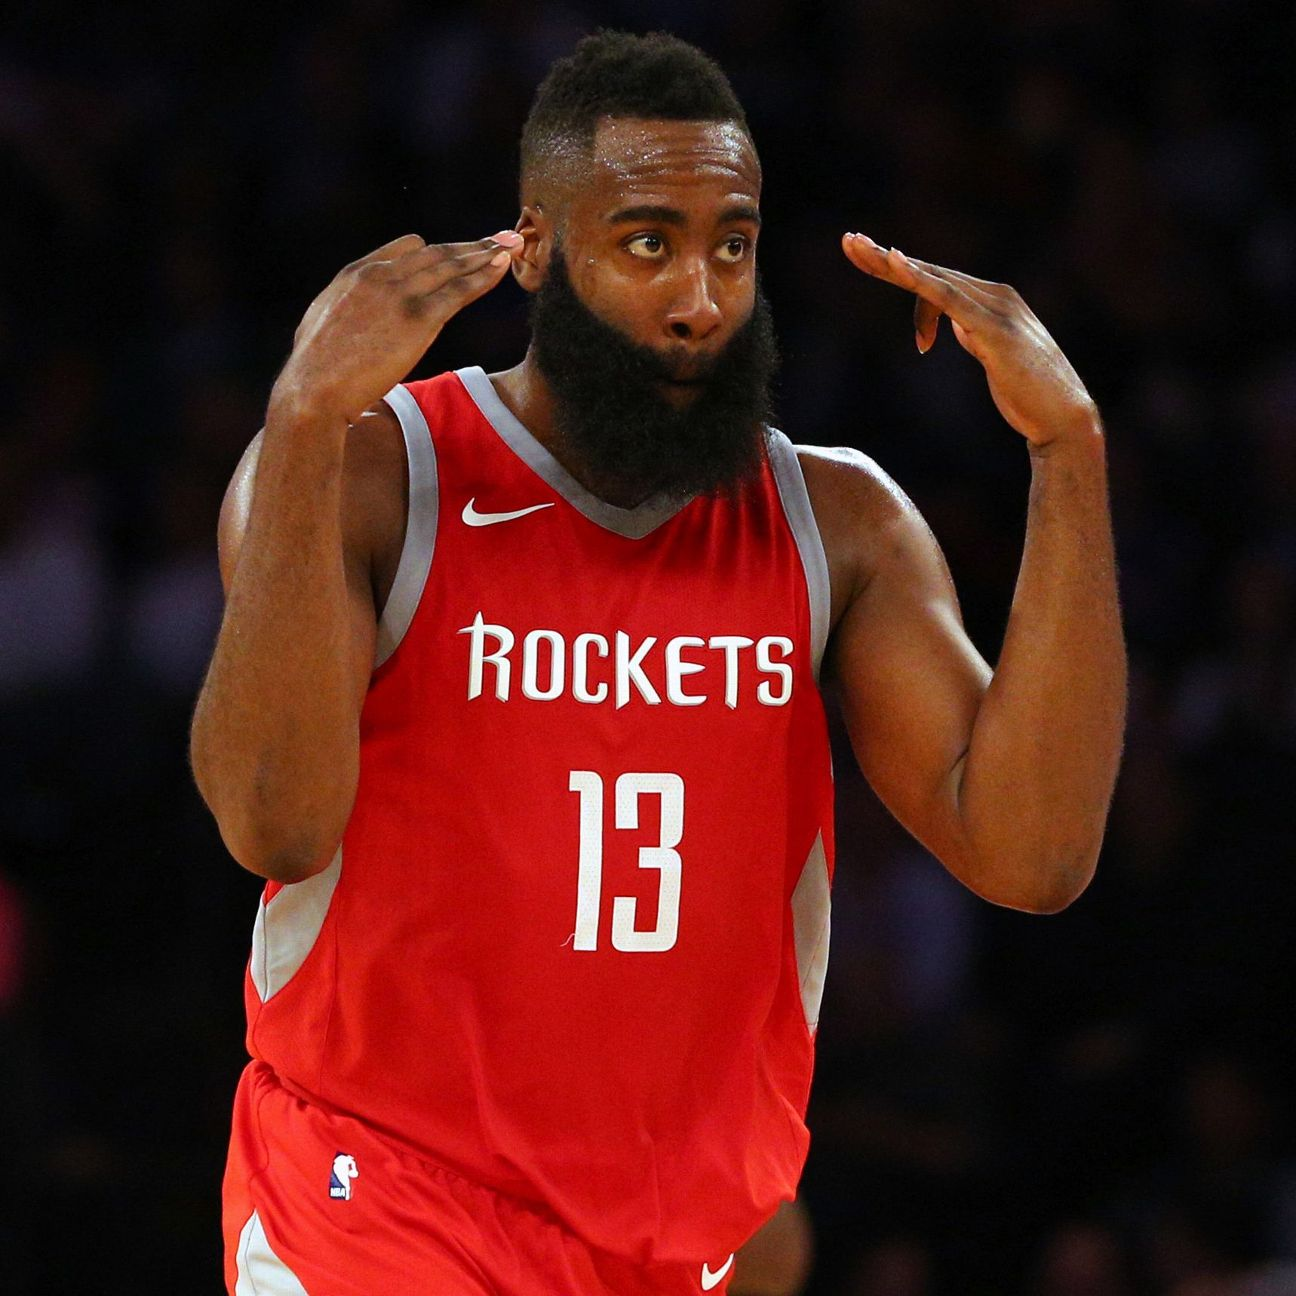 James Harden Yearly Stats: James Harden Of The Houston Rockets Scores 50 Points In